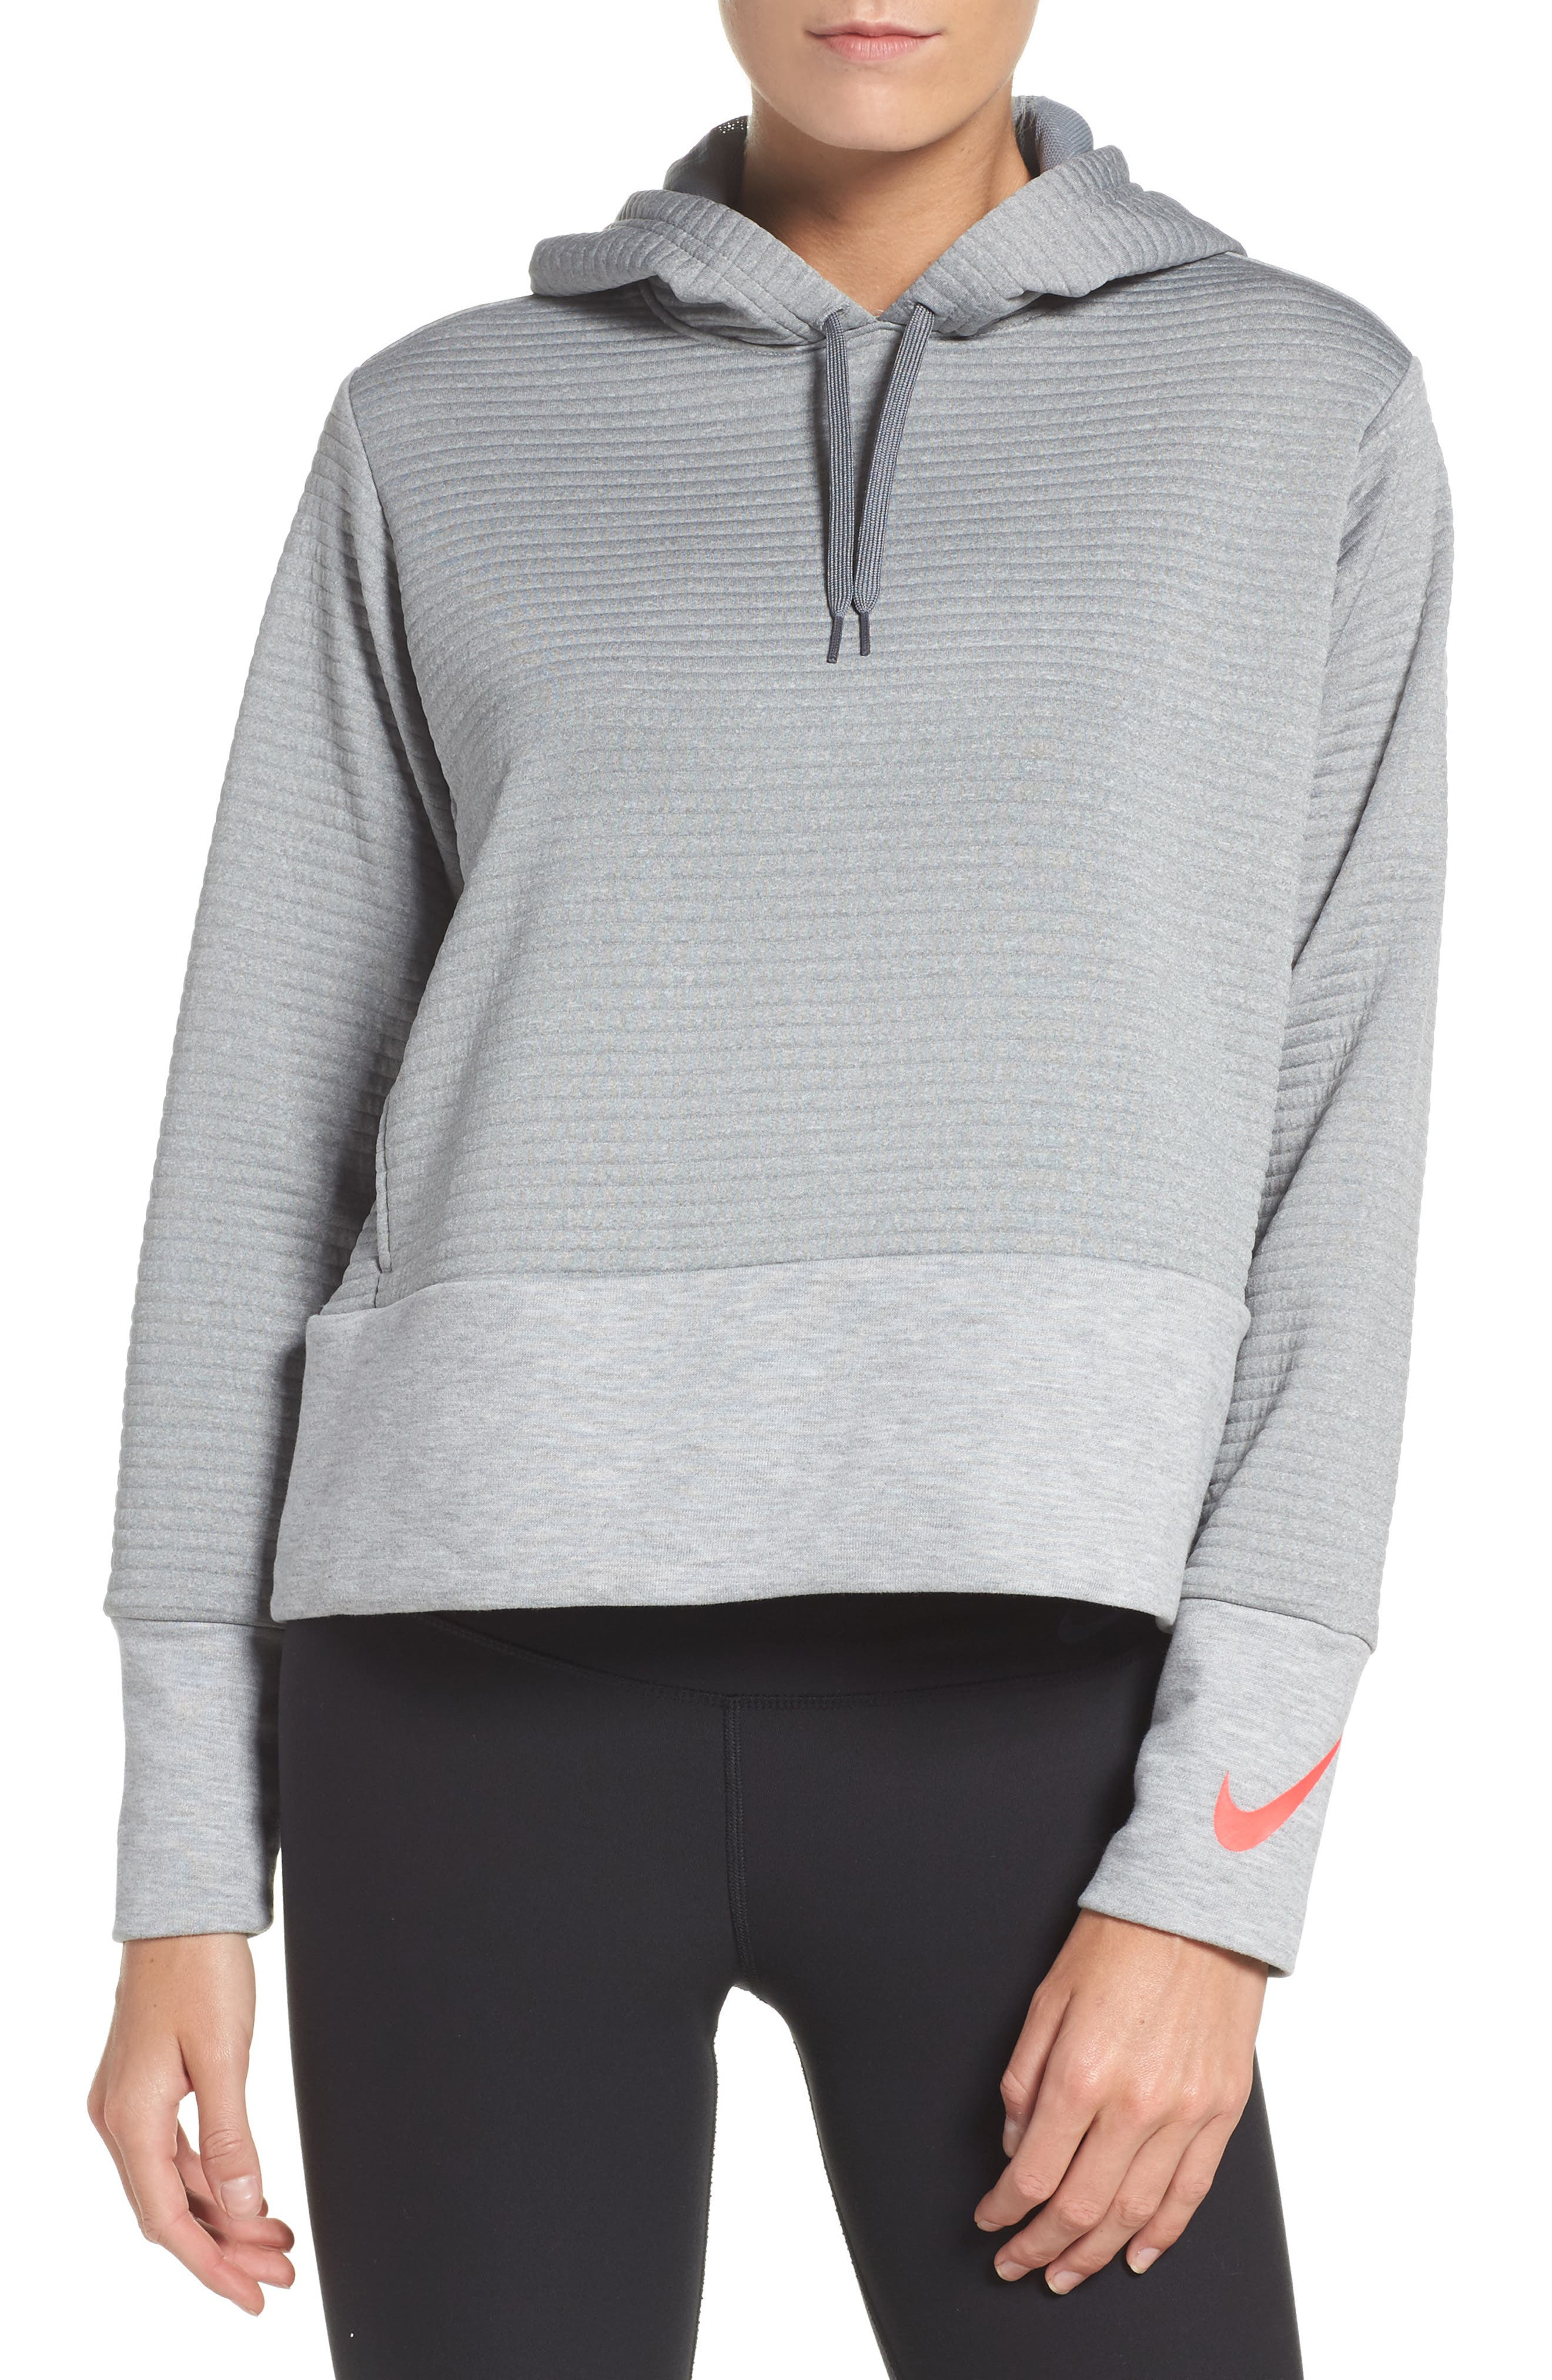 Dry Ribbed Hoodie,                             Main thumbnail 1, color,                             Dark Grey Heather/ Grey/ Pink